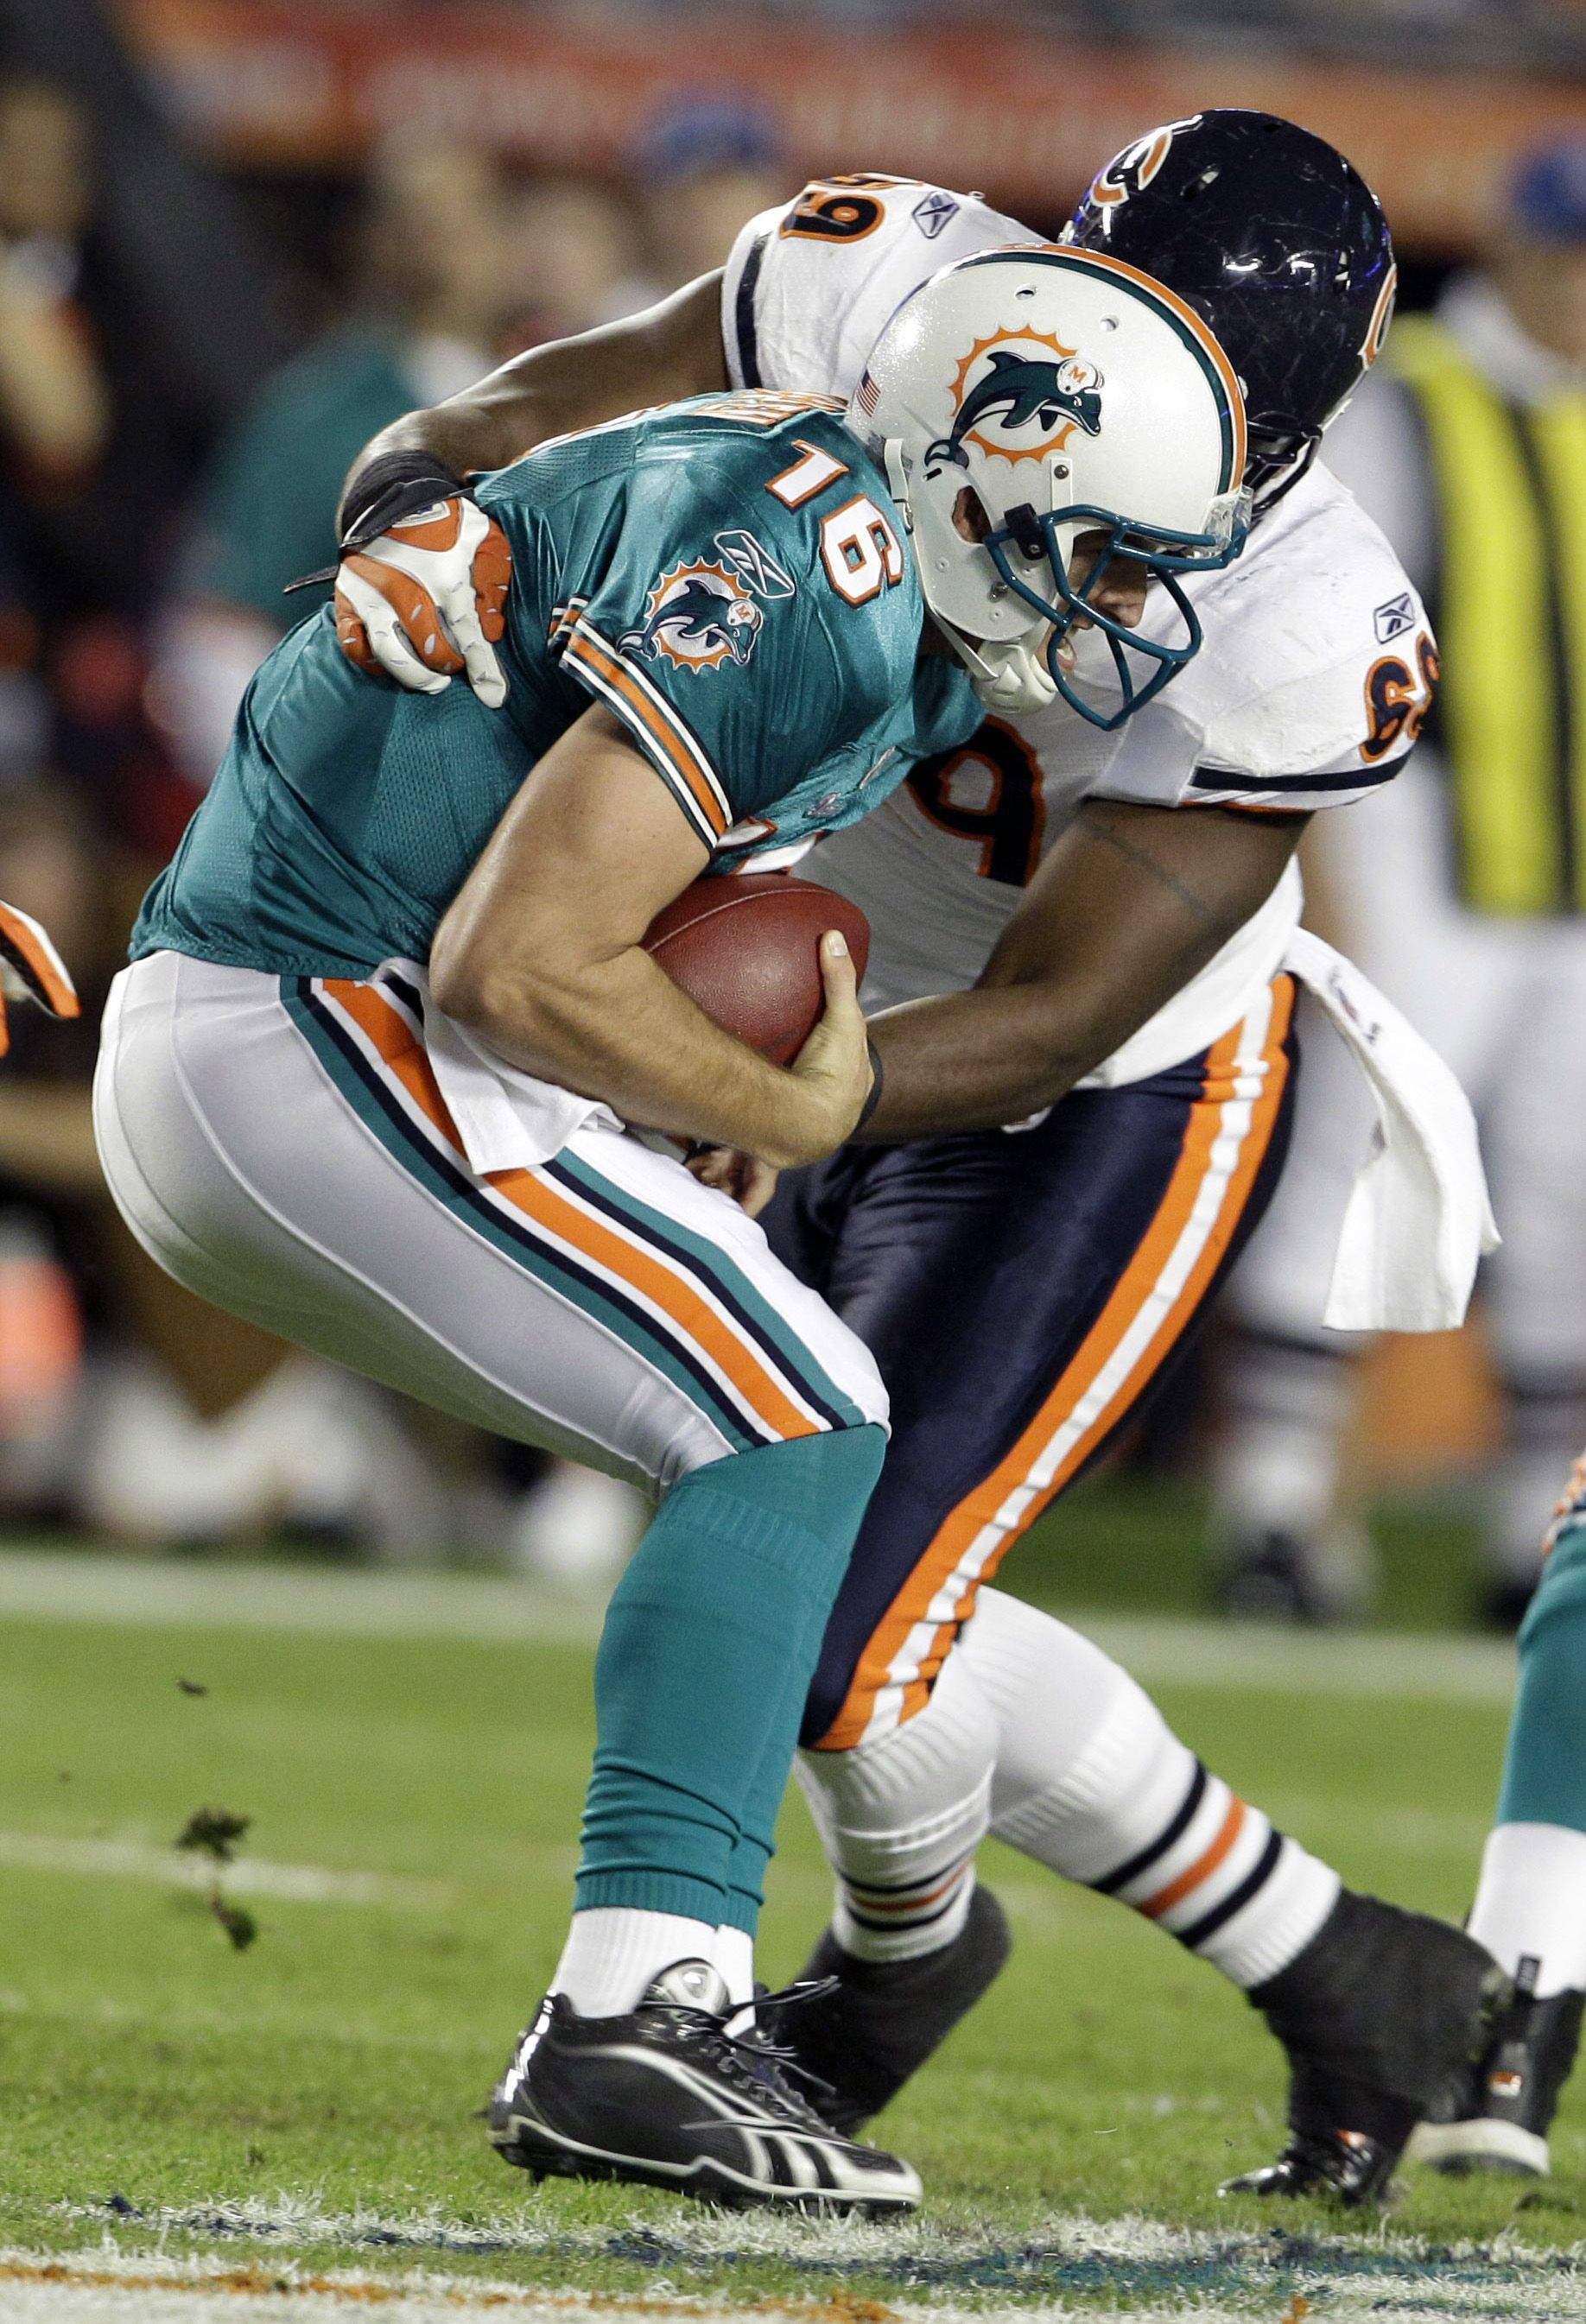 Chicago Bears defensive end Henry Melton sacks Miami Dolphins quarterback Tyler Thigpen during the first quarter .